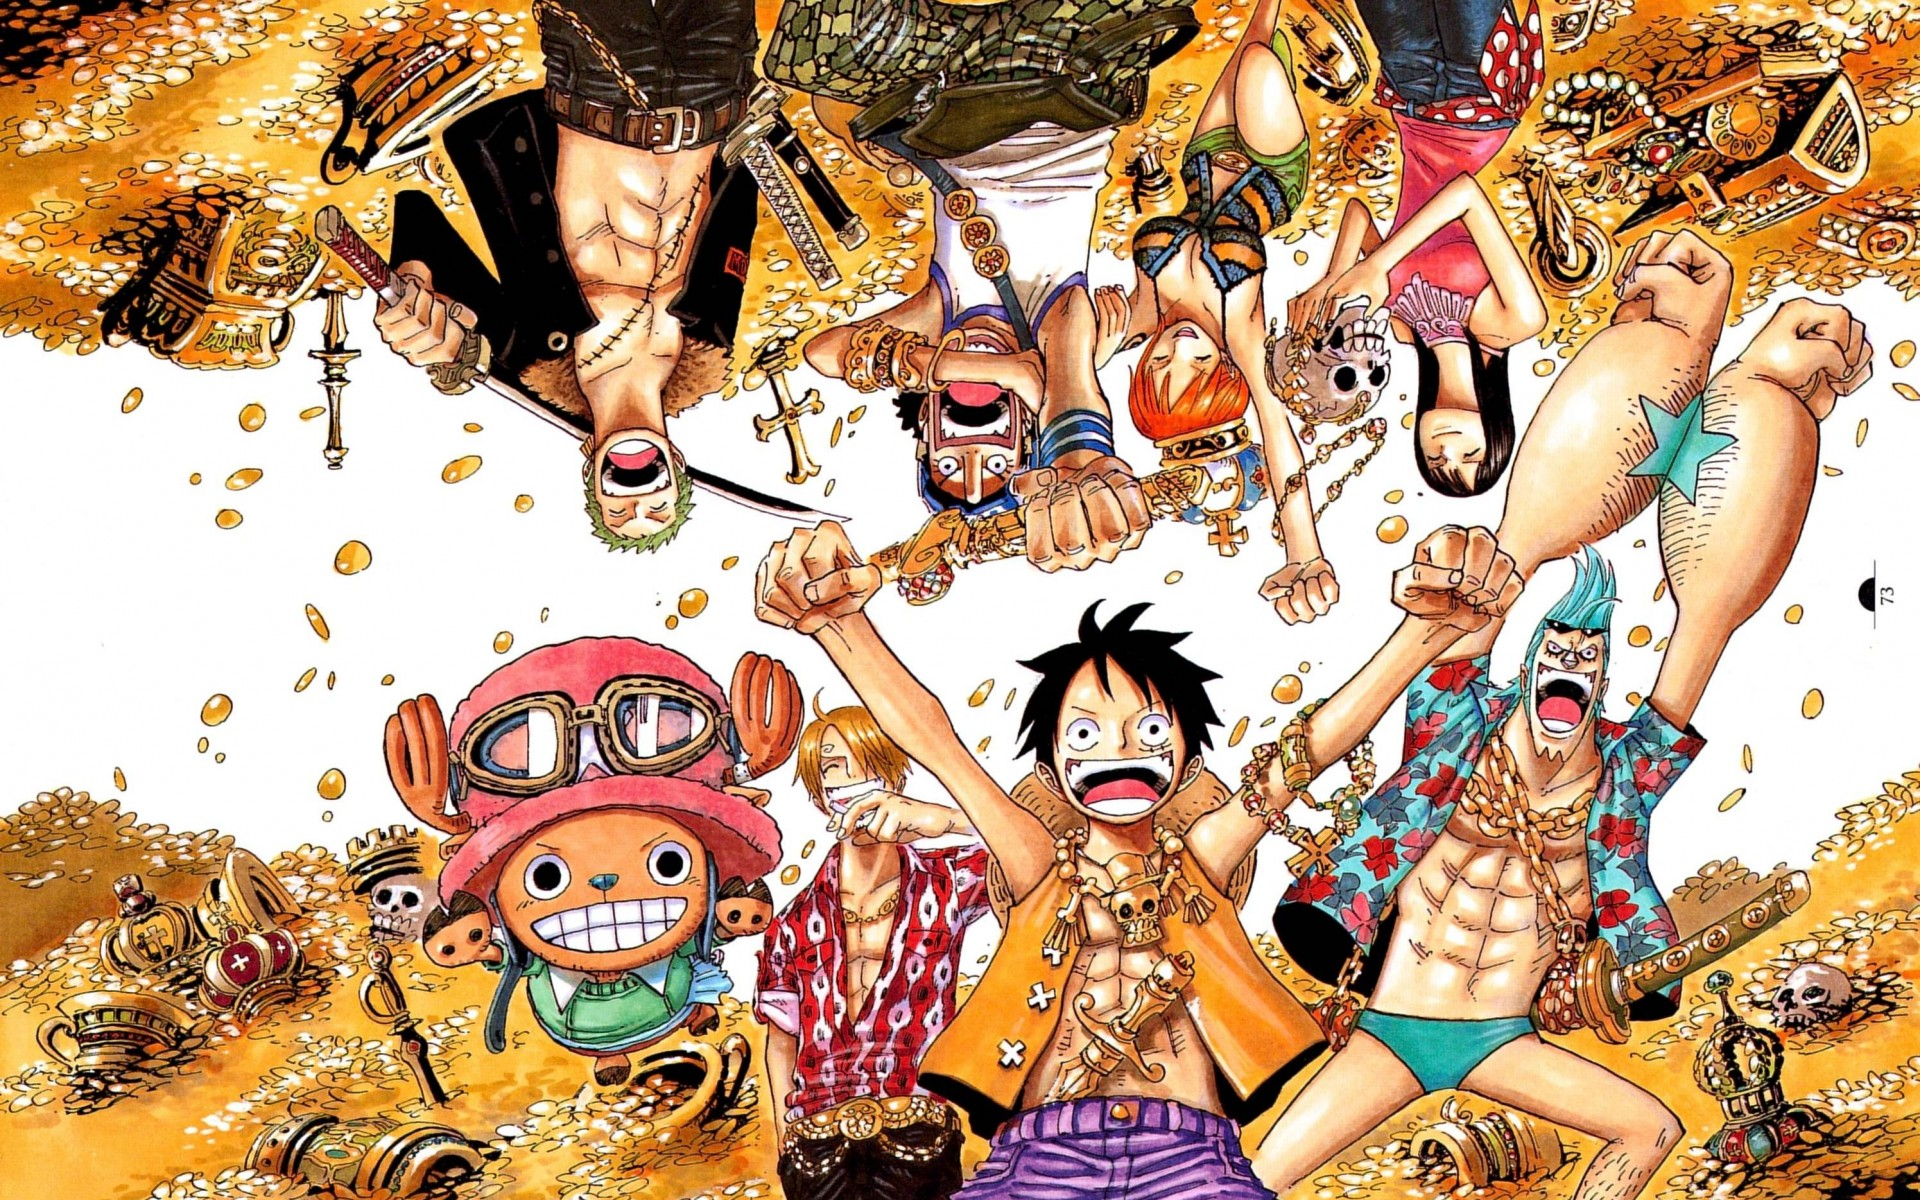 Anime wallpapers hd One Piece Mirror Anime Pict Background HD 1920x1200